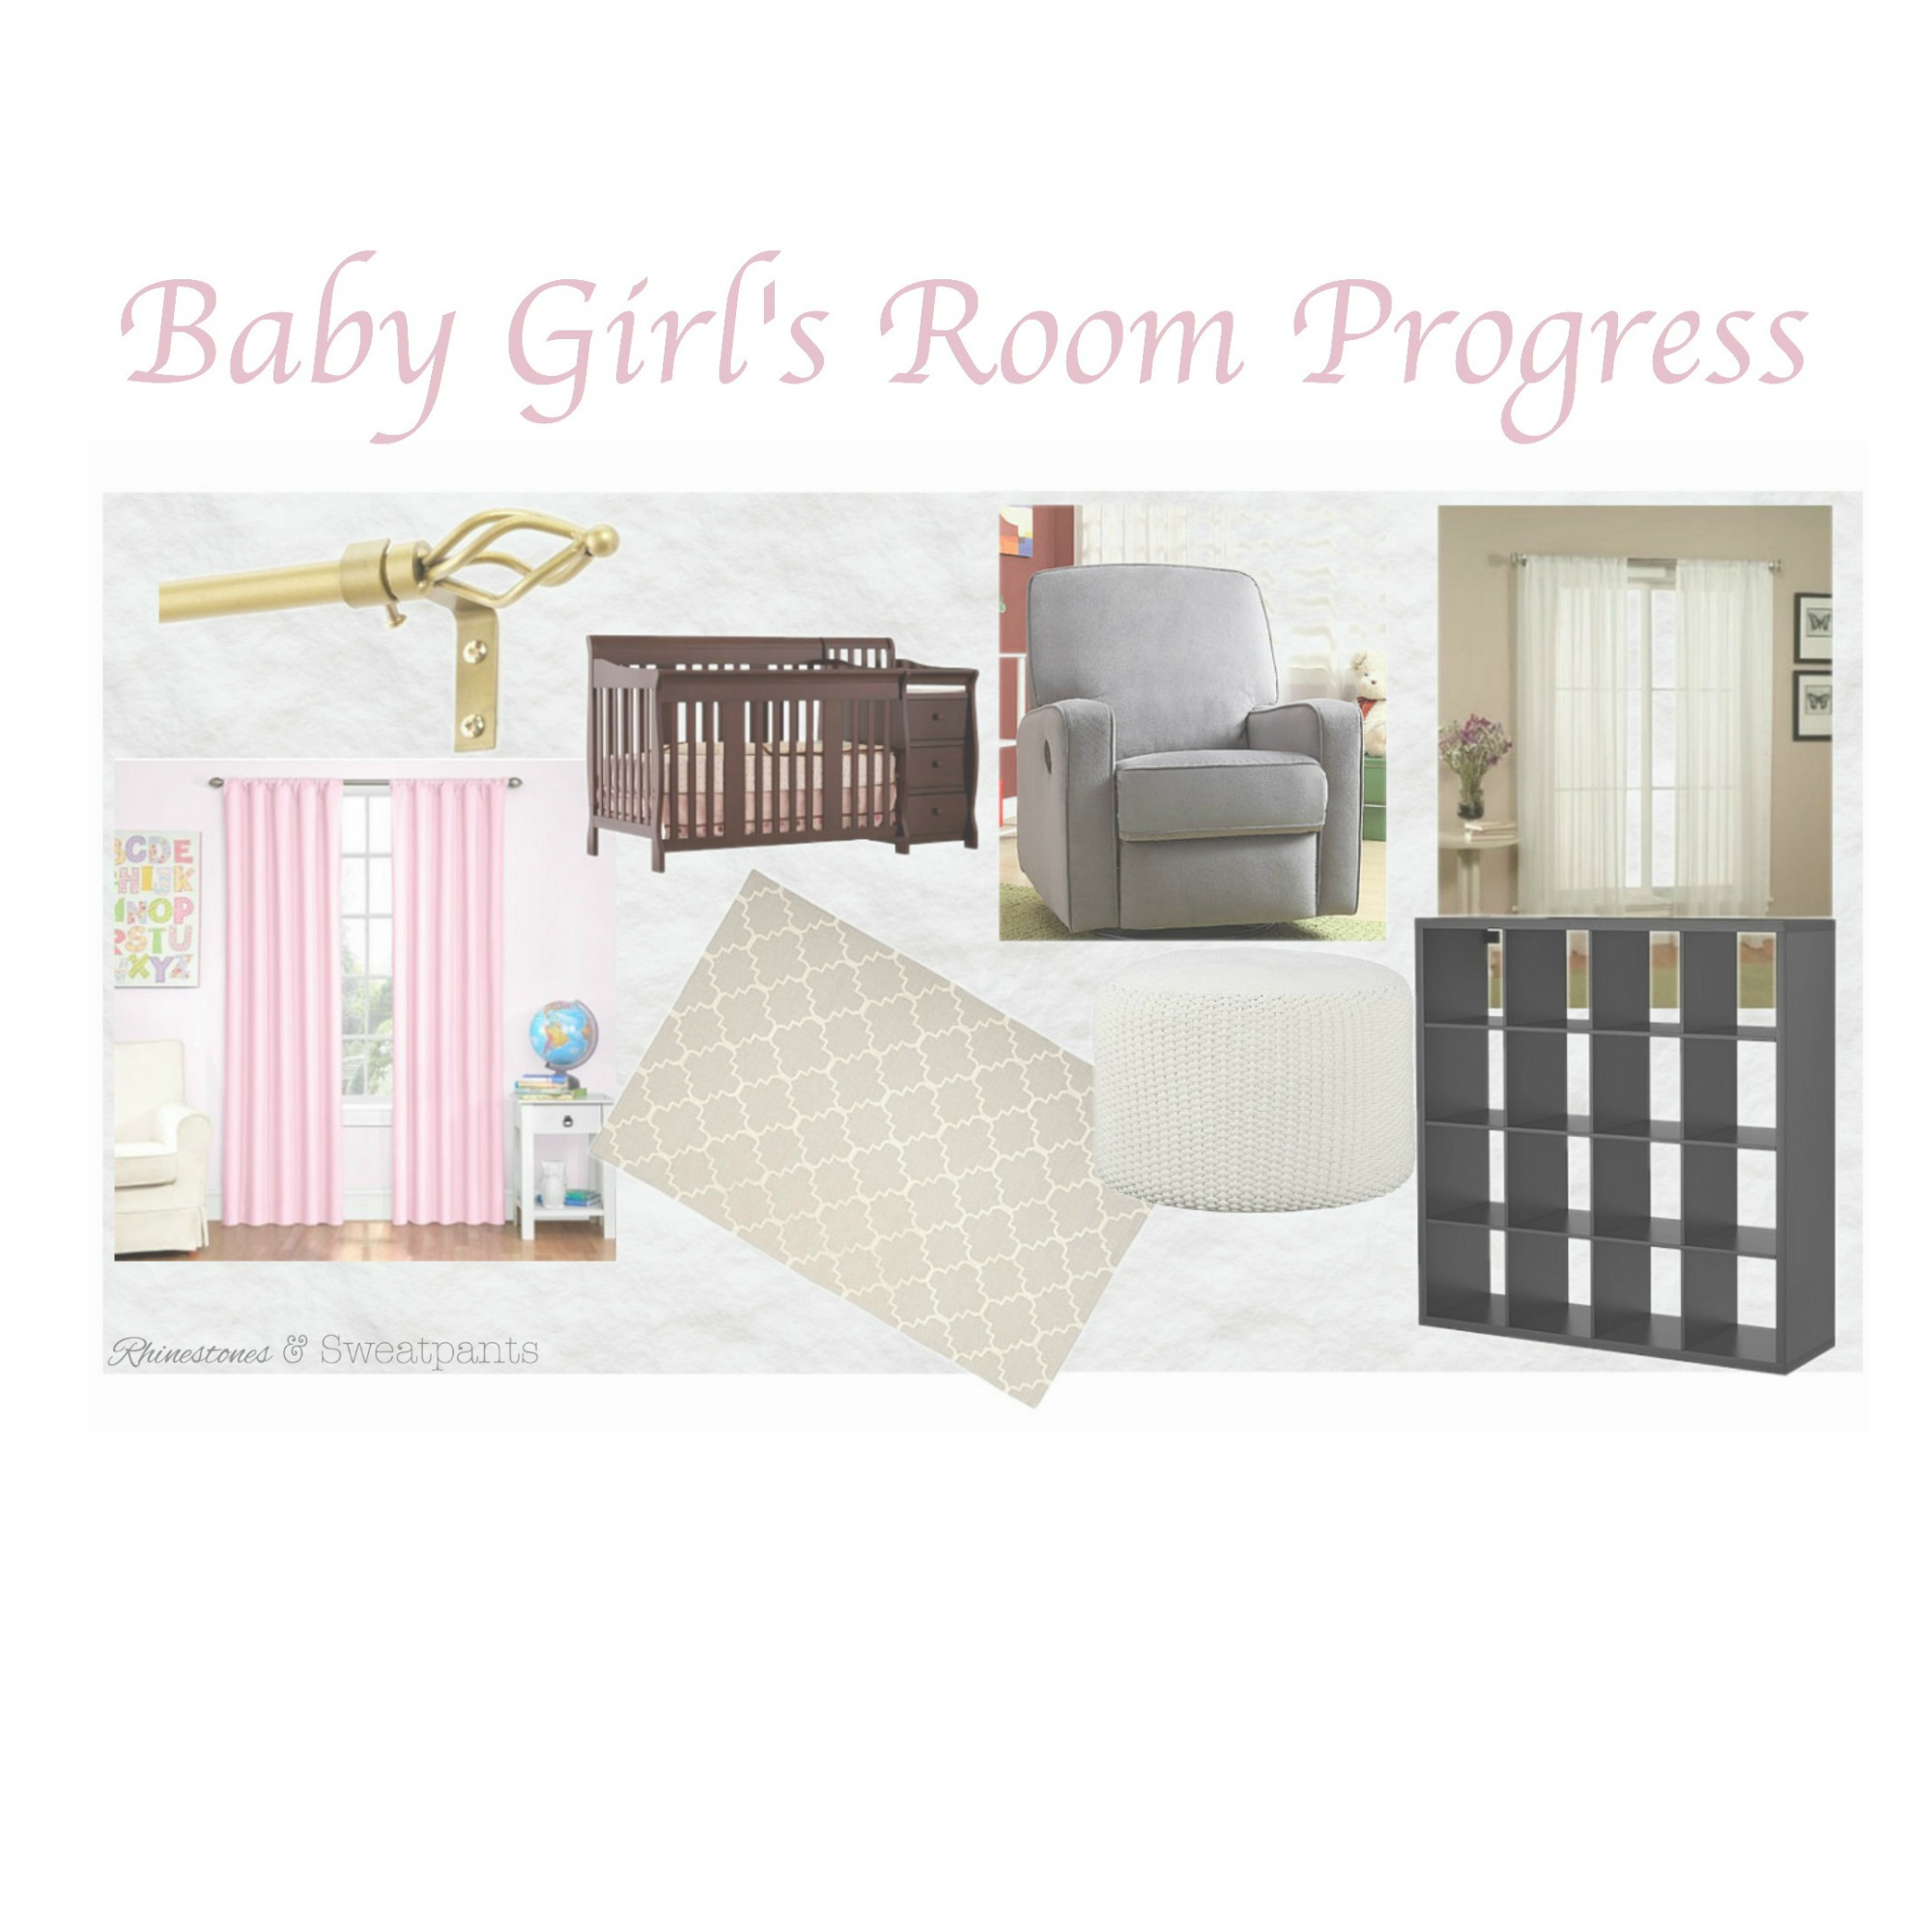 Baby Girl's Room Progress